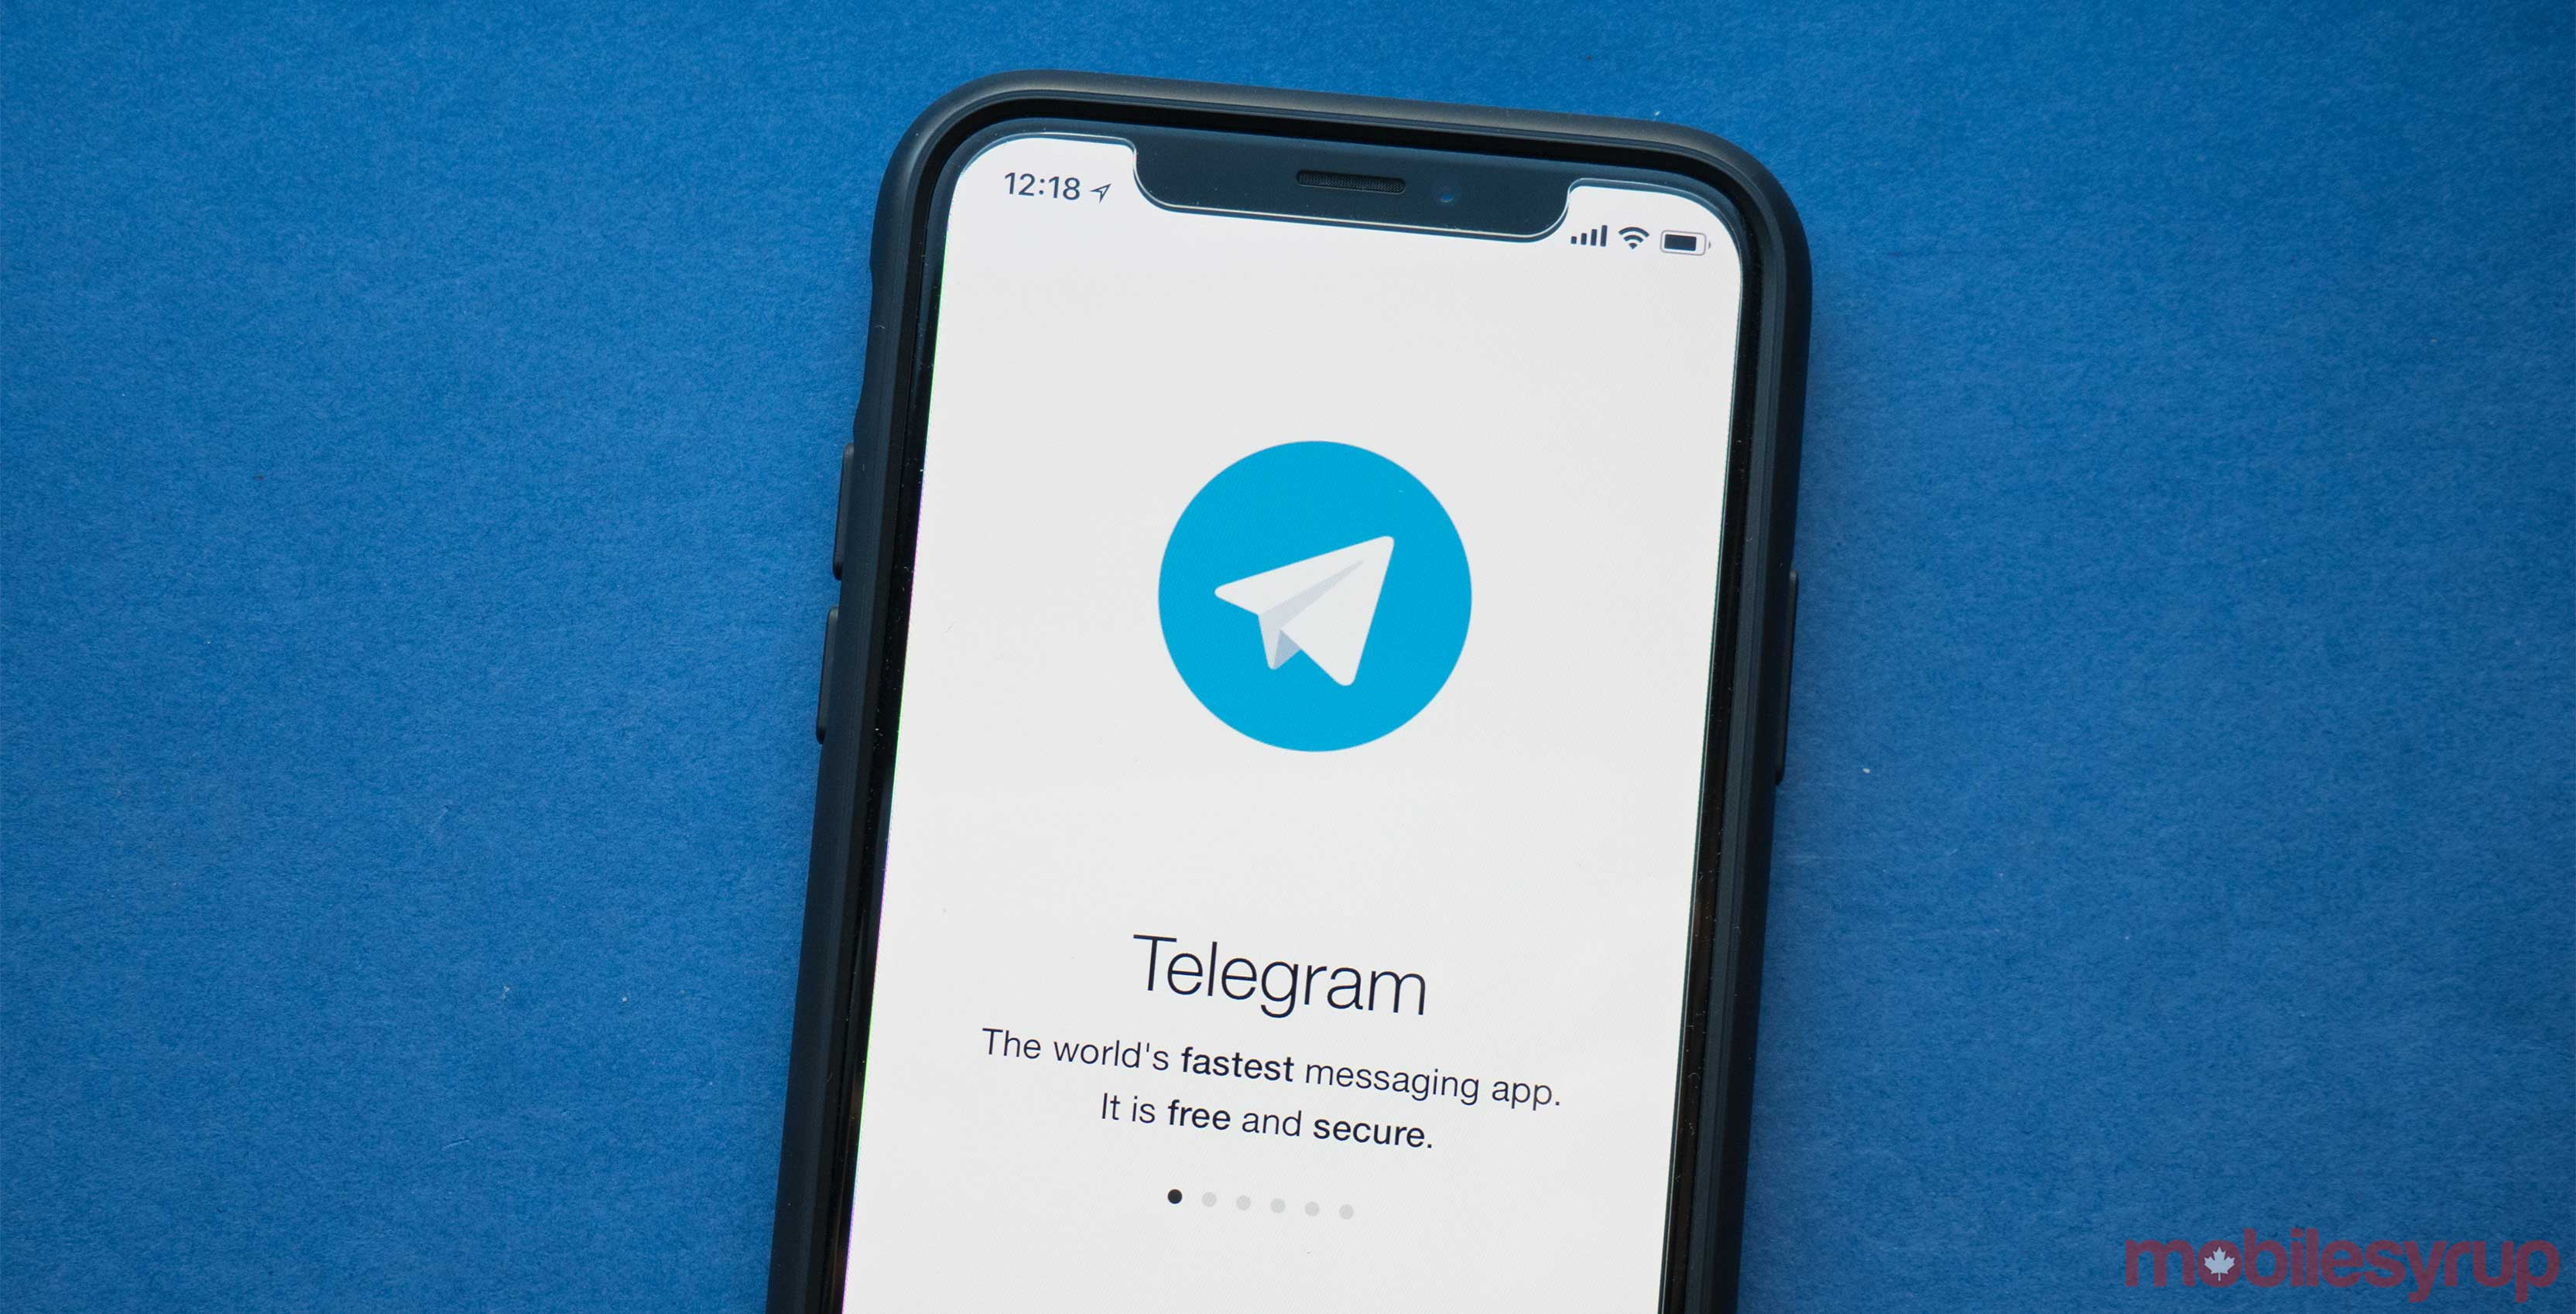 Telegram CEO confirms app faced cyberattack, believes China is responsible